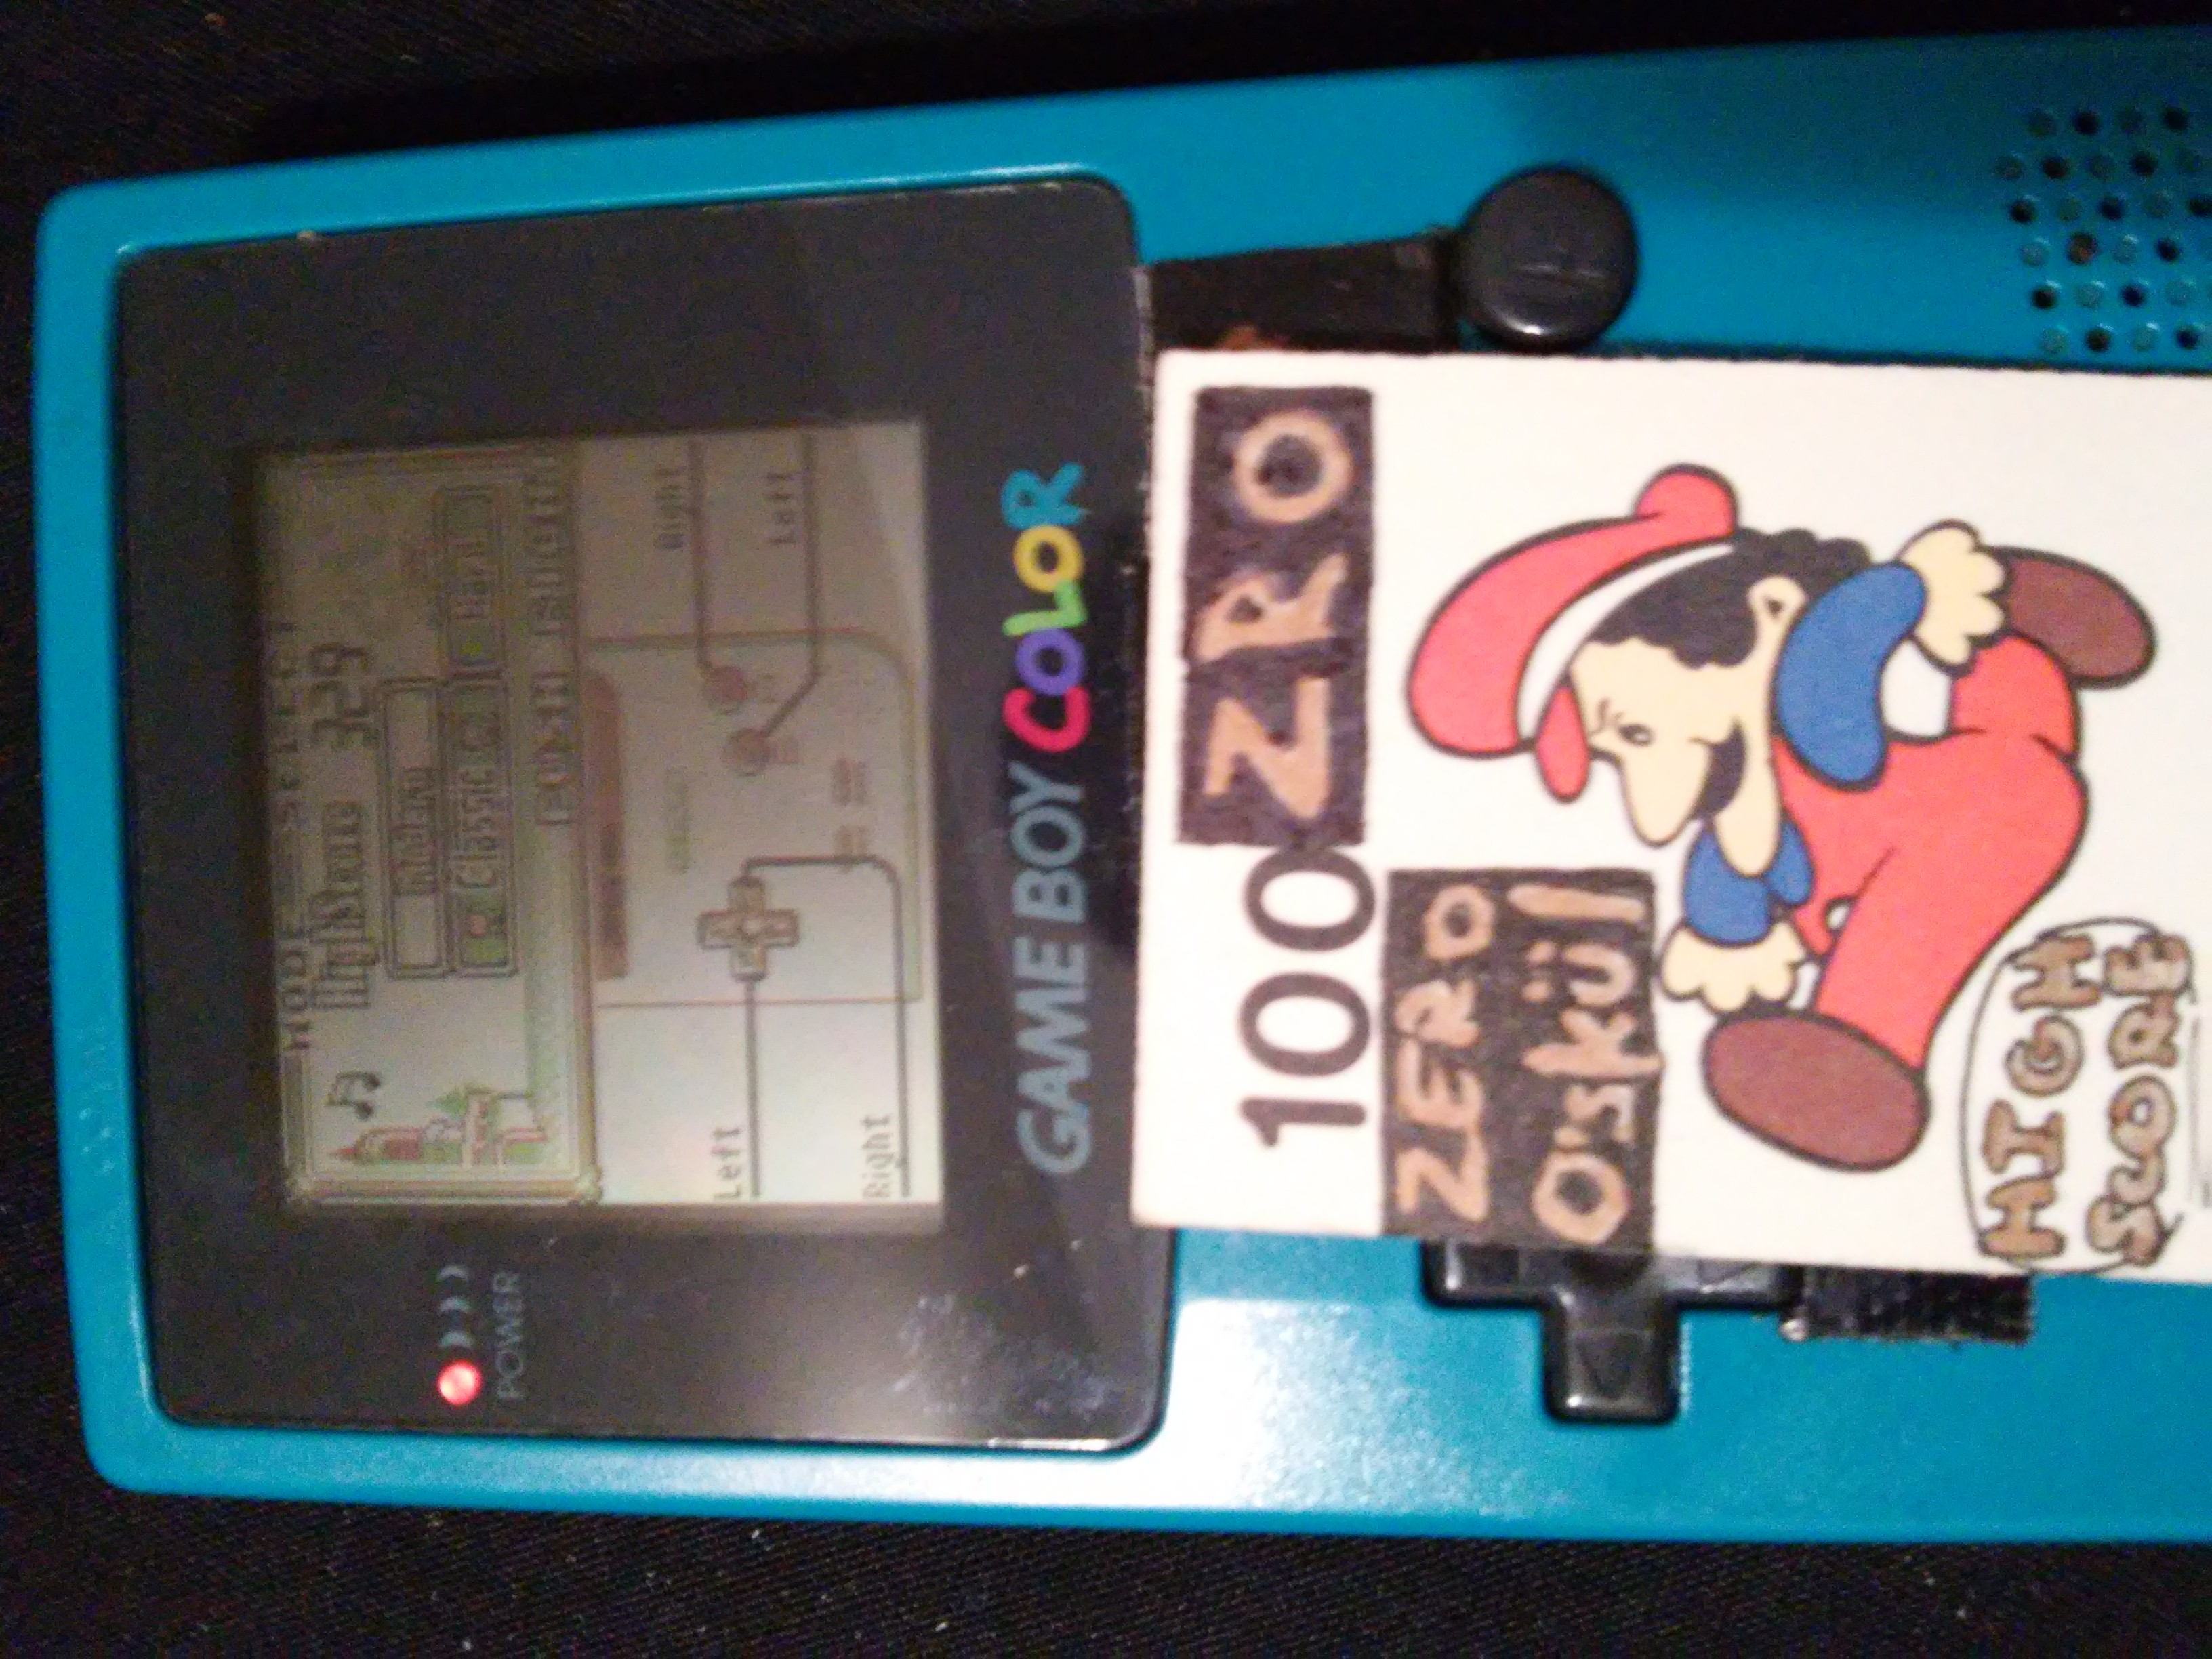 Game & Watch Gallery: Fire [Classic: Hard] 329 points